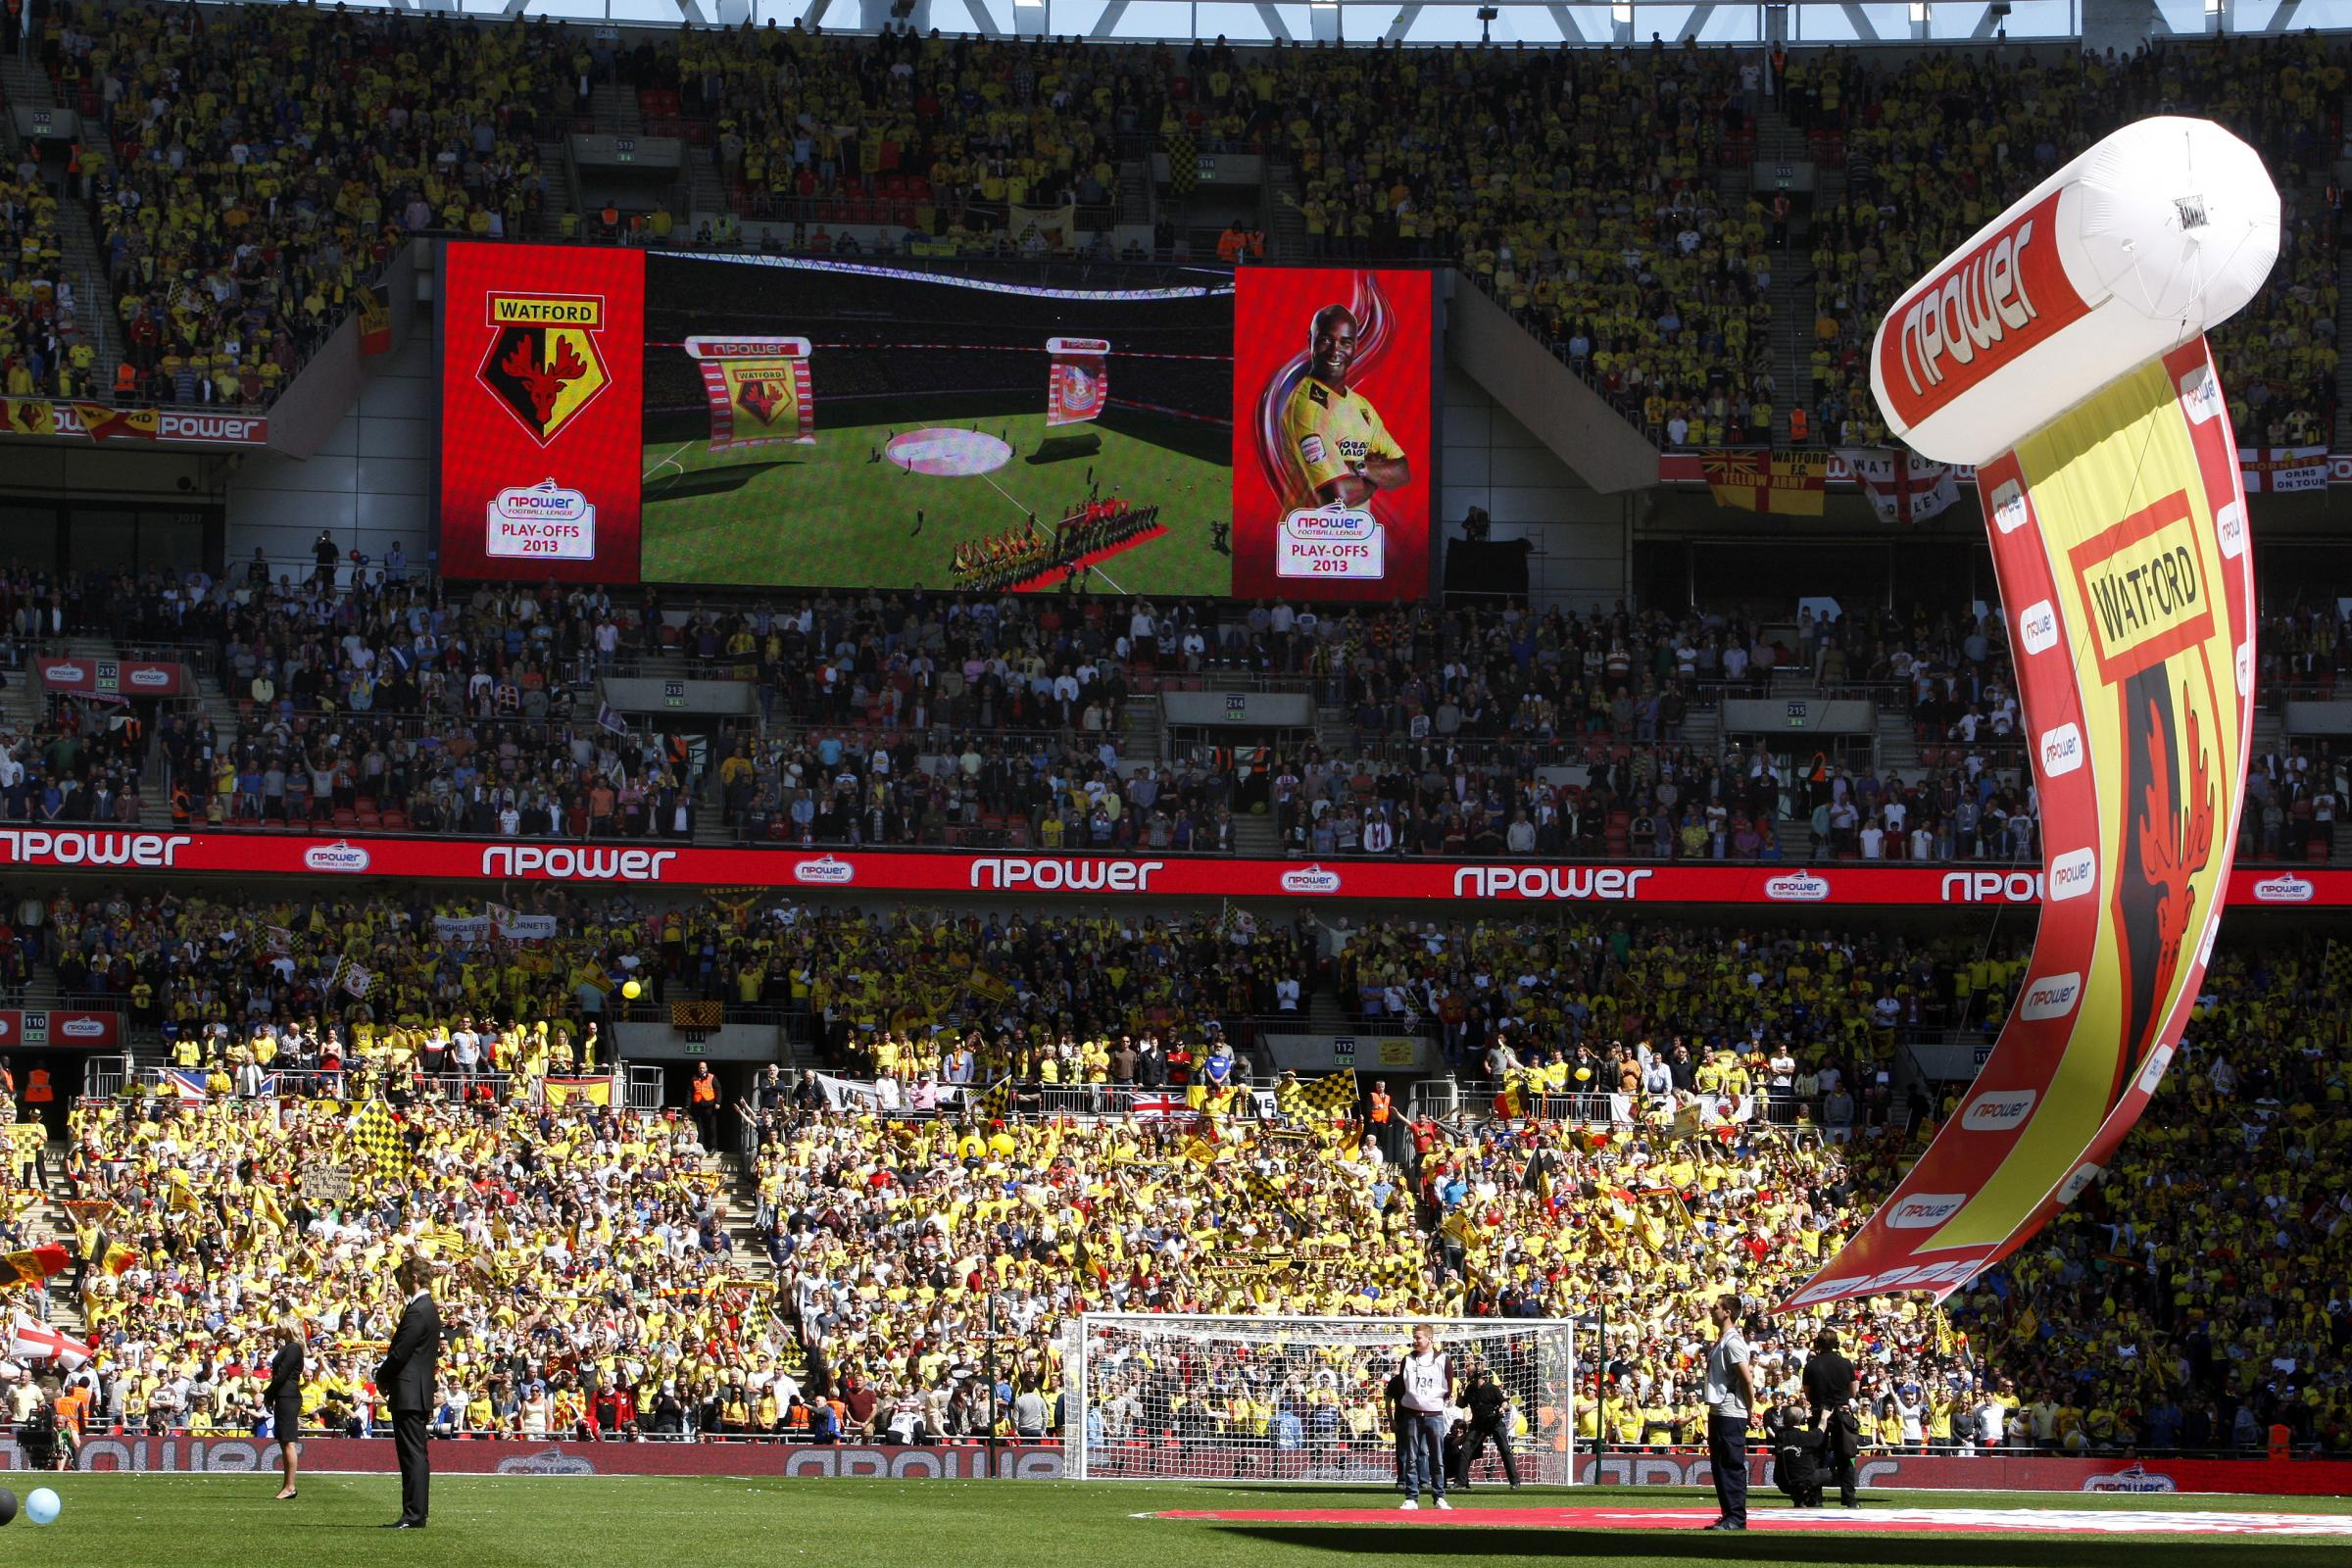 Watford reached the Championship play-off final last season. Picture: Holly Cant